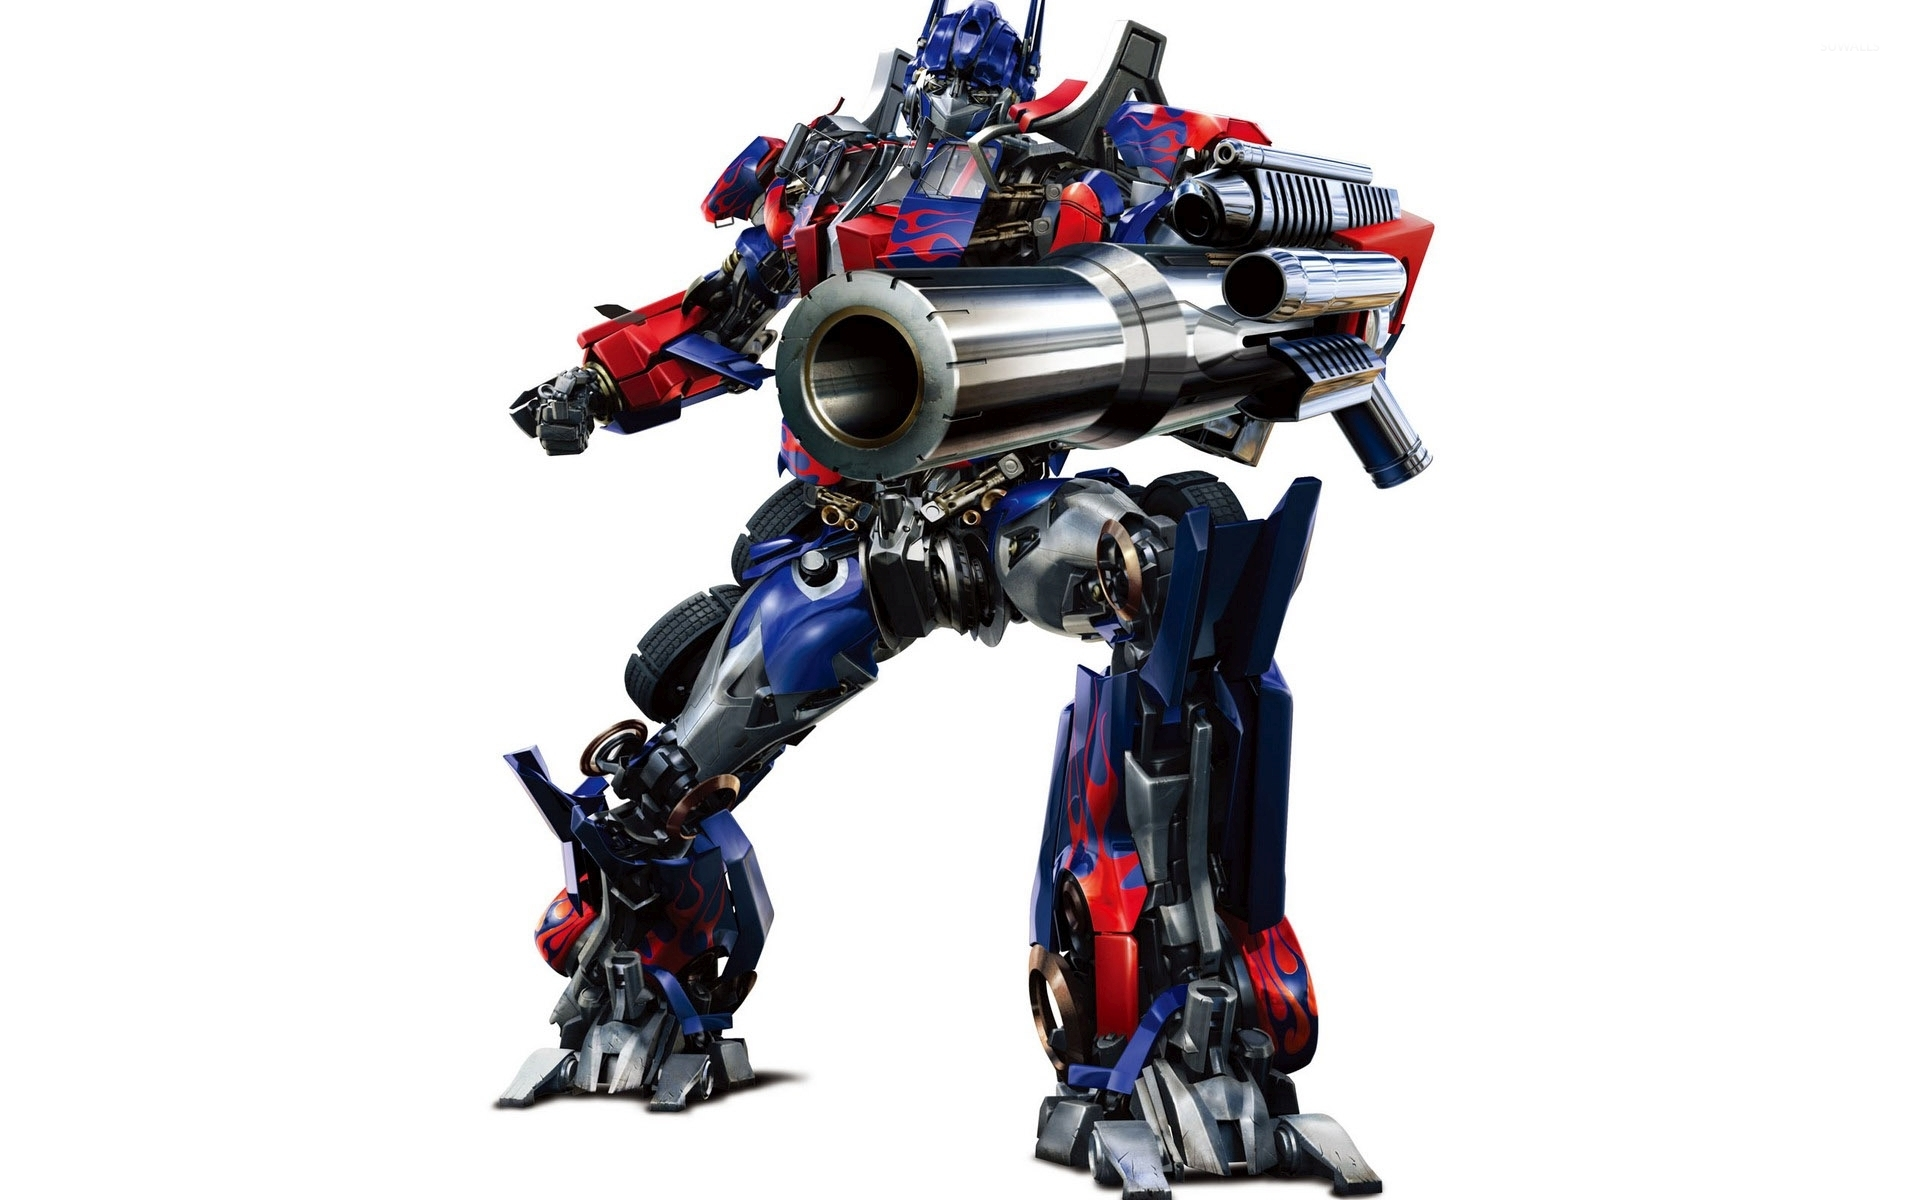 Optimus Prime - Transformers [4] wallpaper - Movie ...